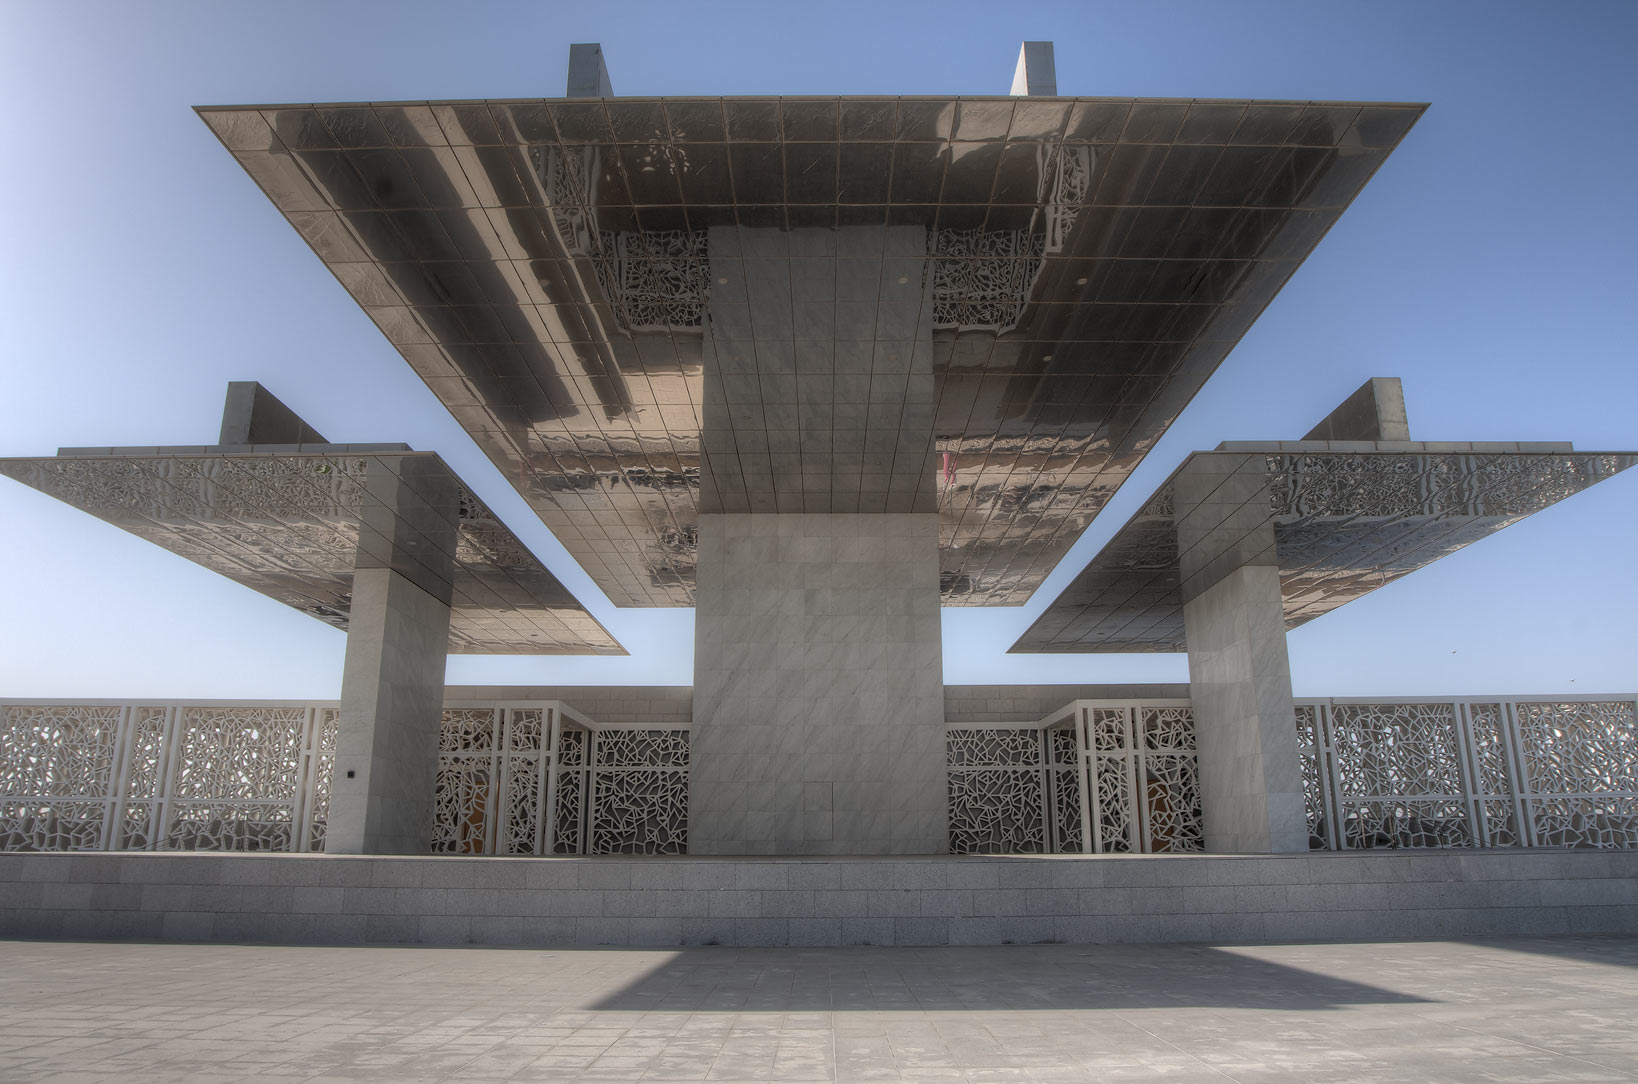 Steel canopy of Ceremonial Court in Education City. Doha, Qatar